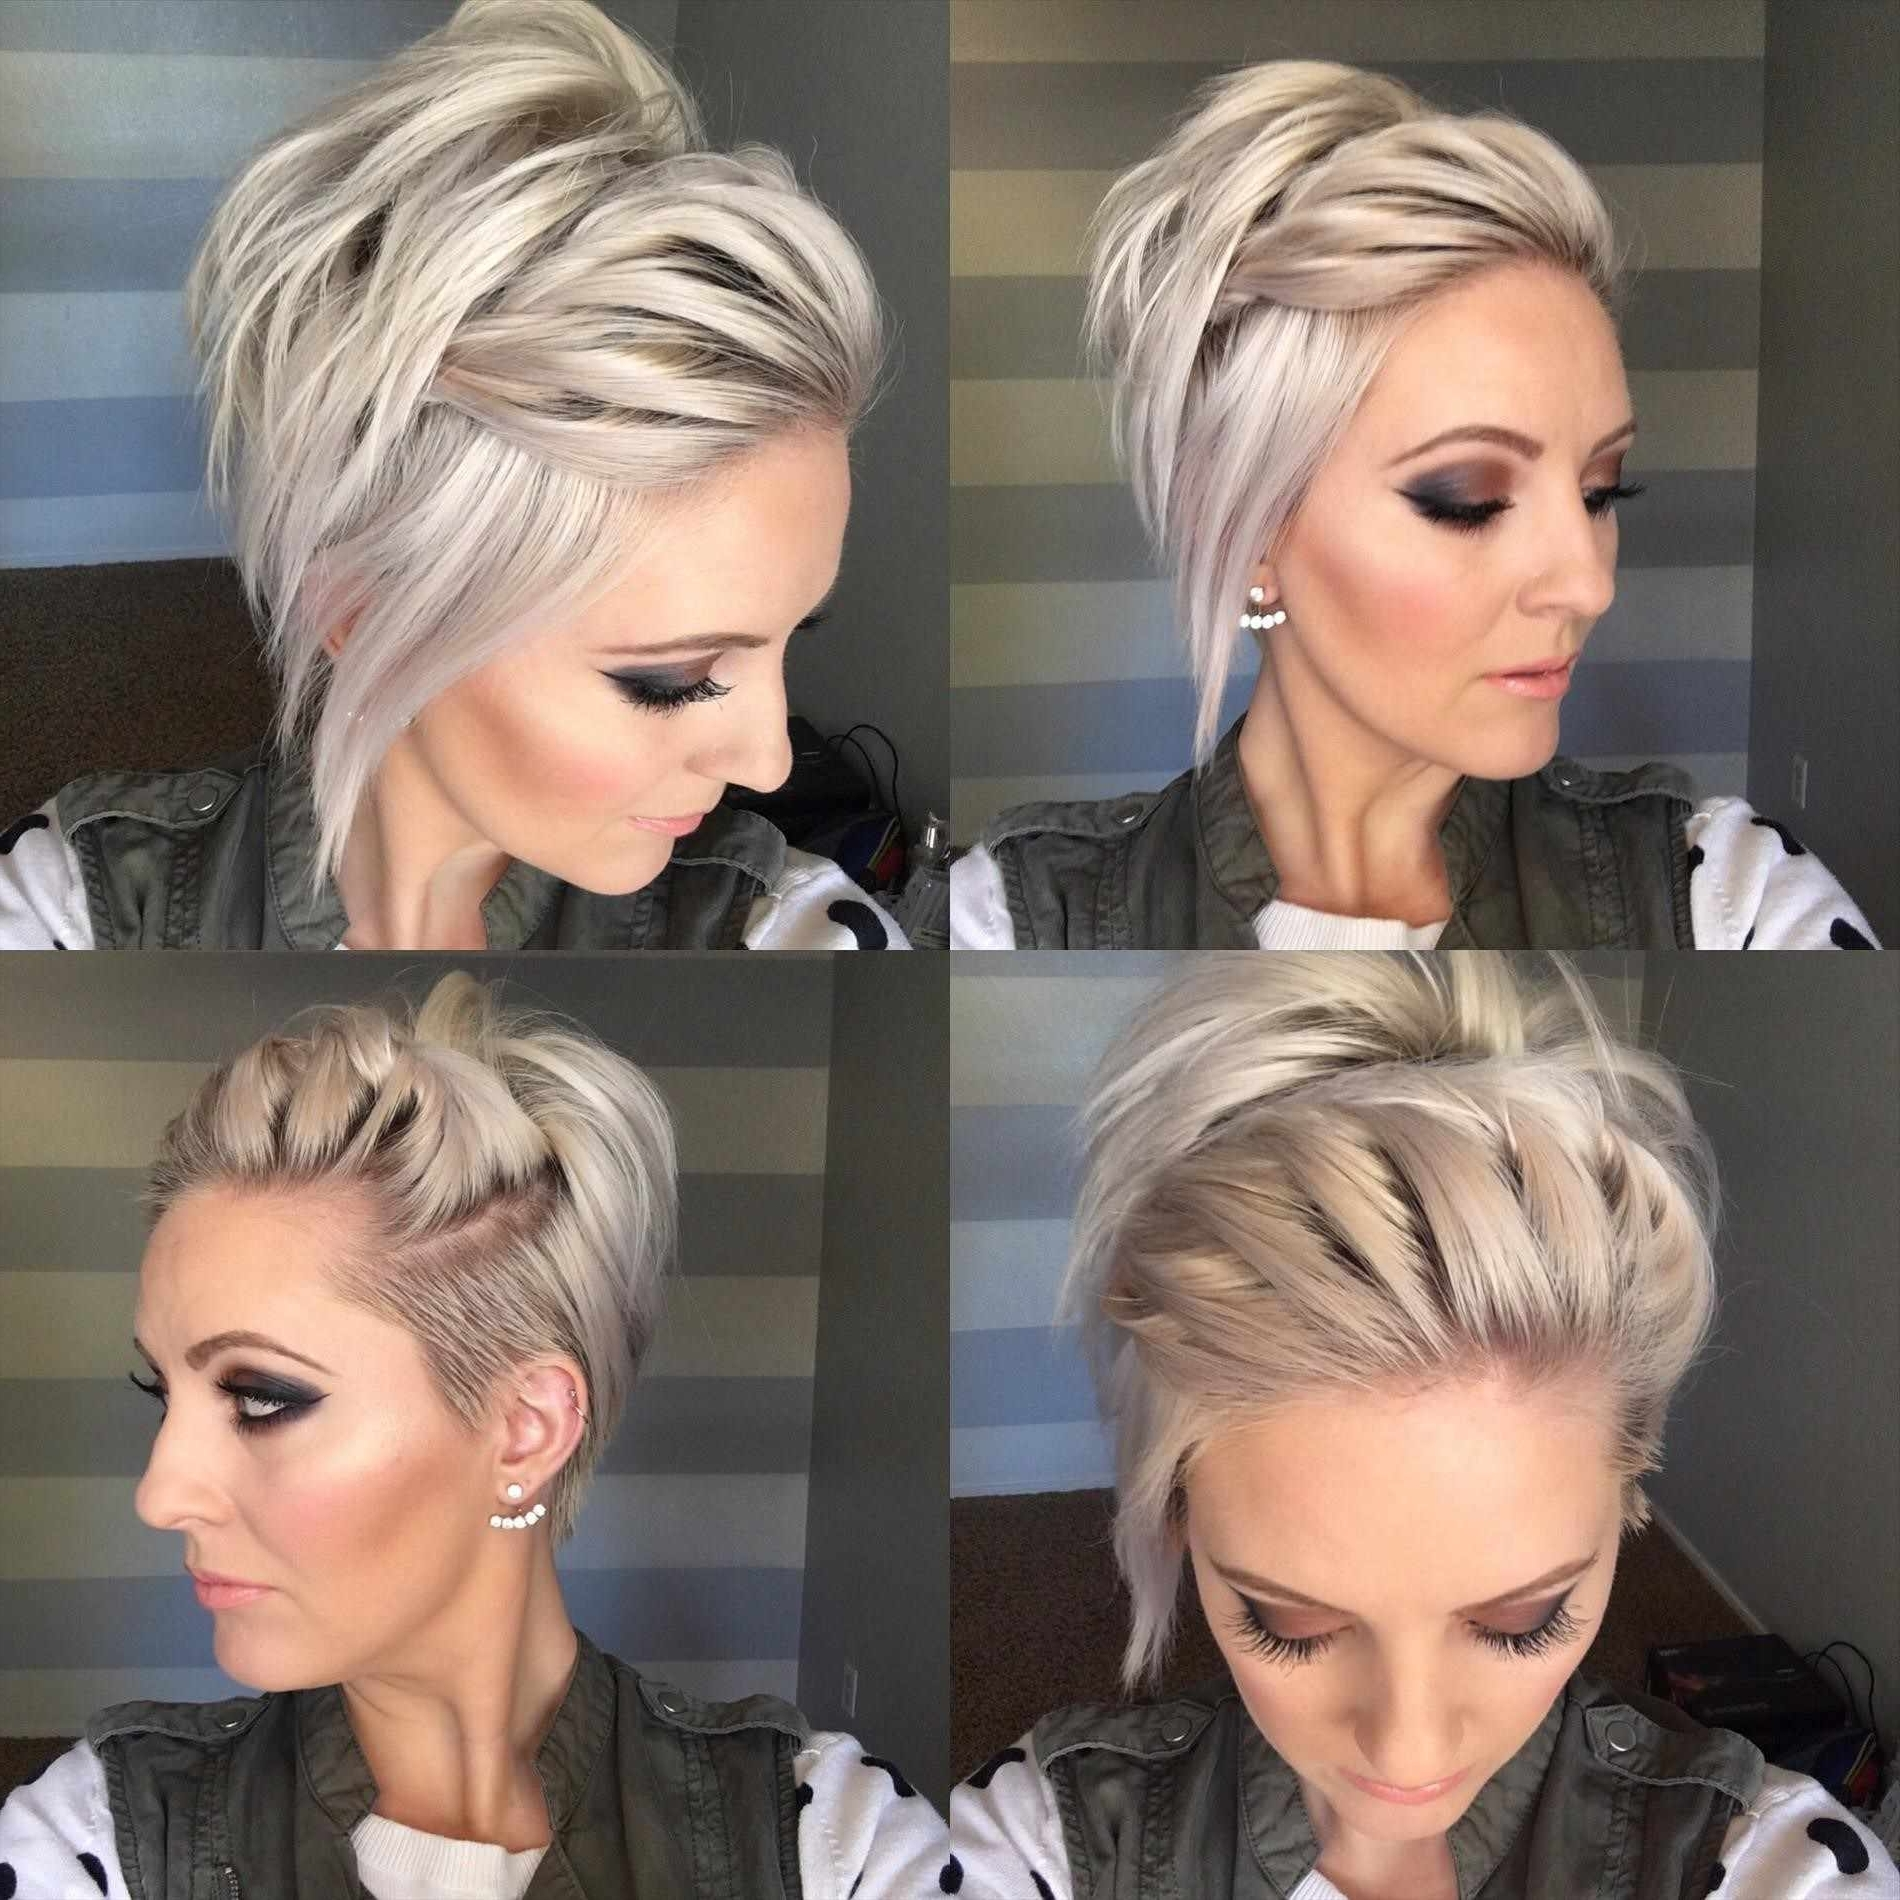 Short Short Hair Bob Updos Hairstyles Tutorials Hairstyle Foðº Women Intended For Soft Updos For Short Hair (View 11 of 15)